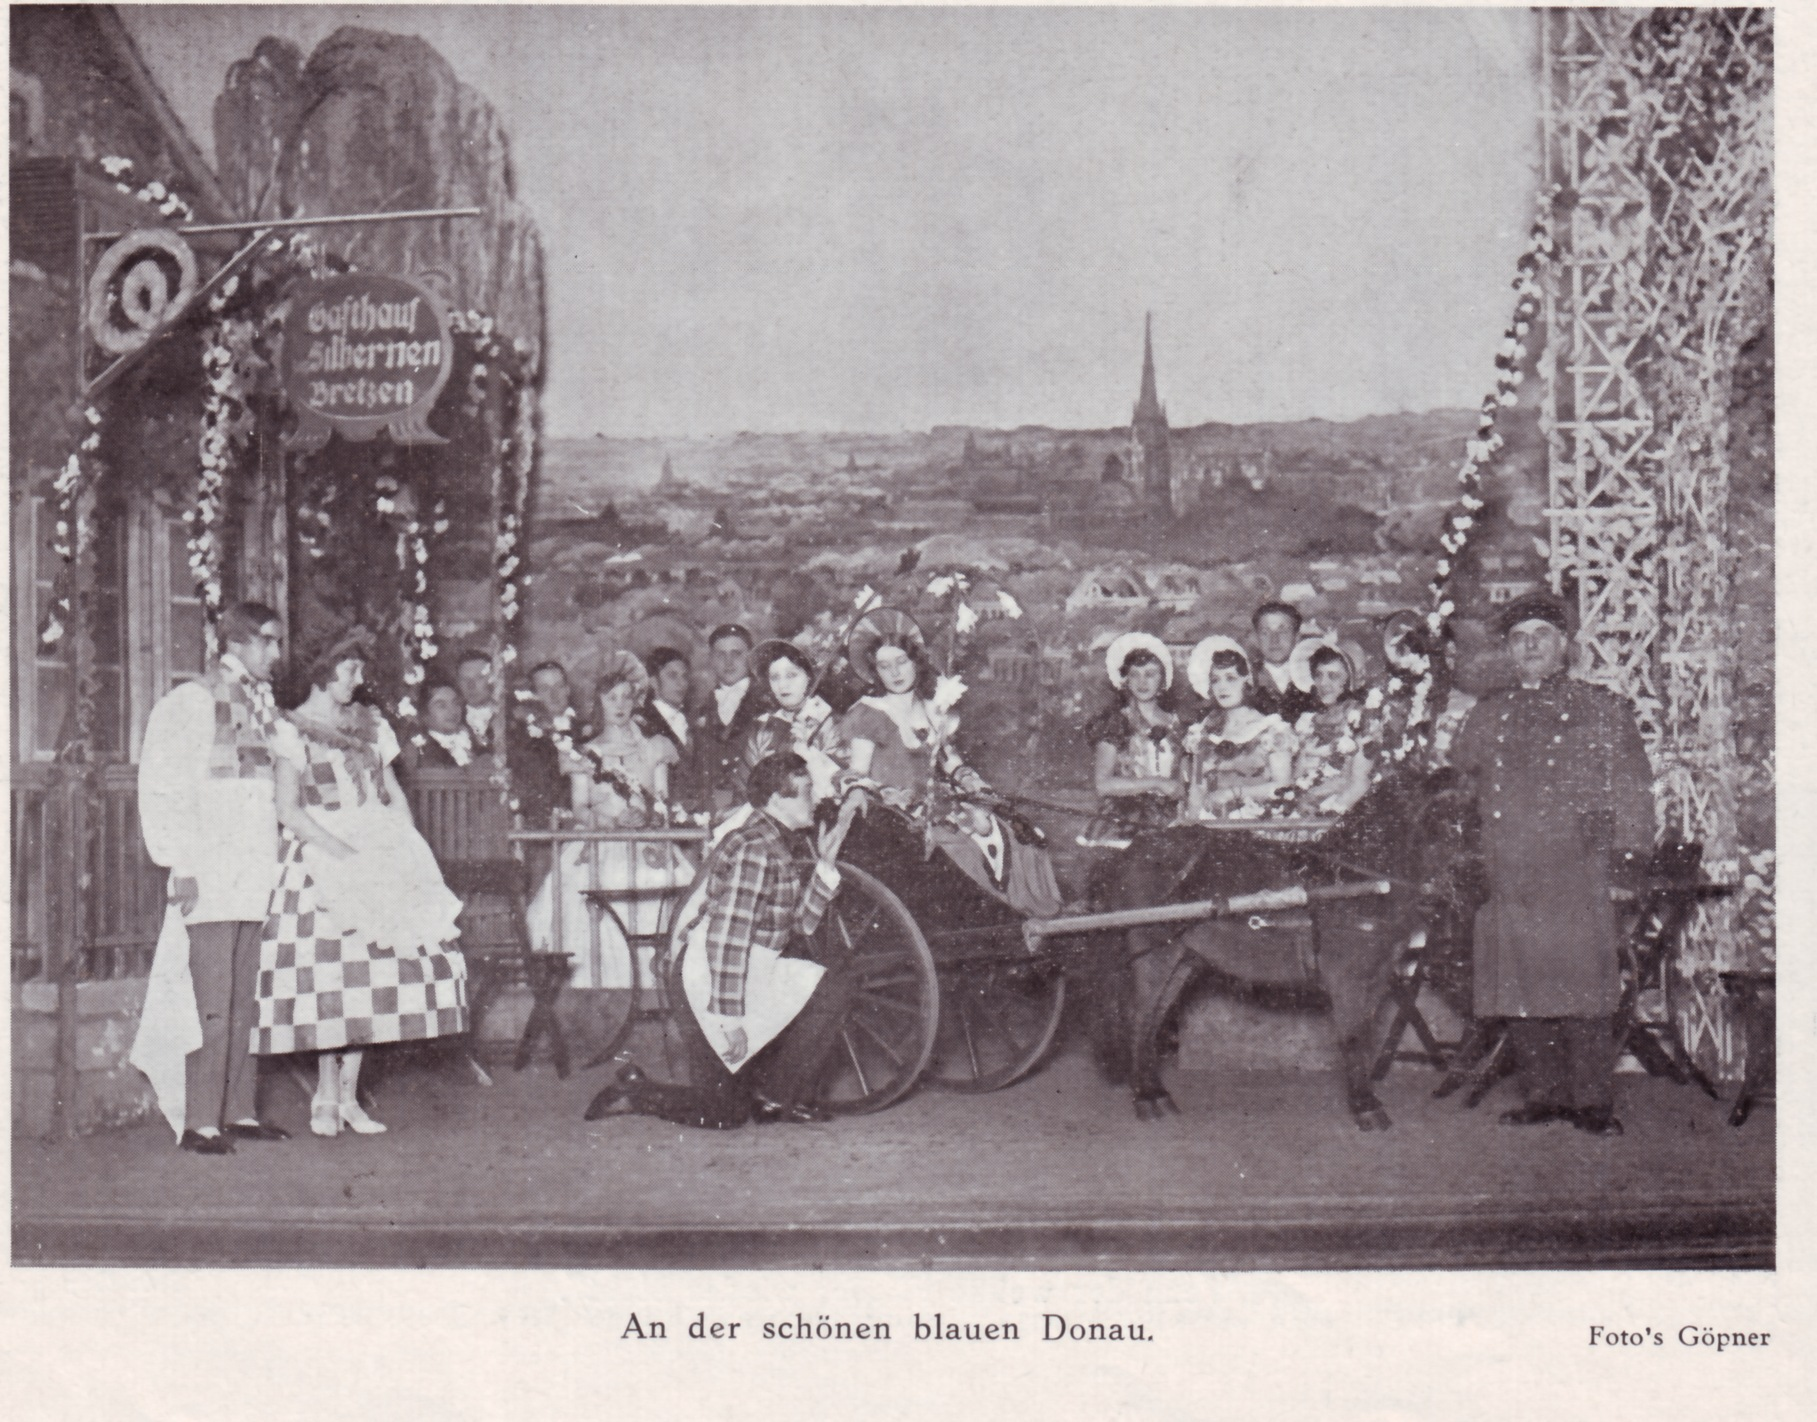 "Scene from the Fritz Hirsch production Fritz Hirsch ""An der schönen blauen Donau"" in the 1930s."